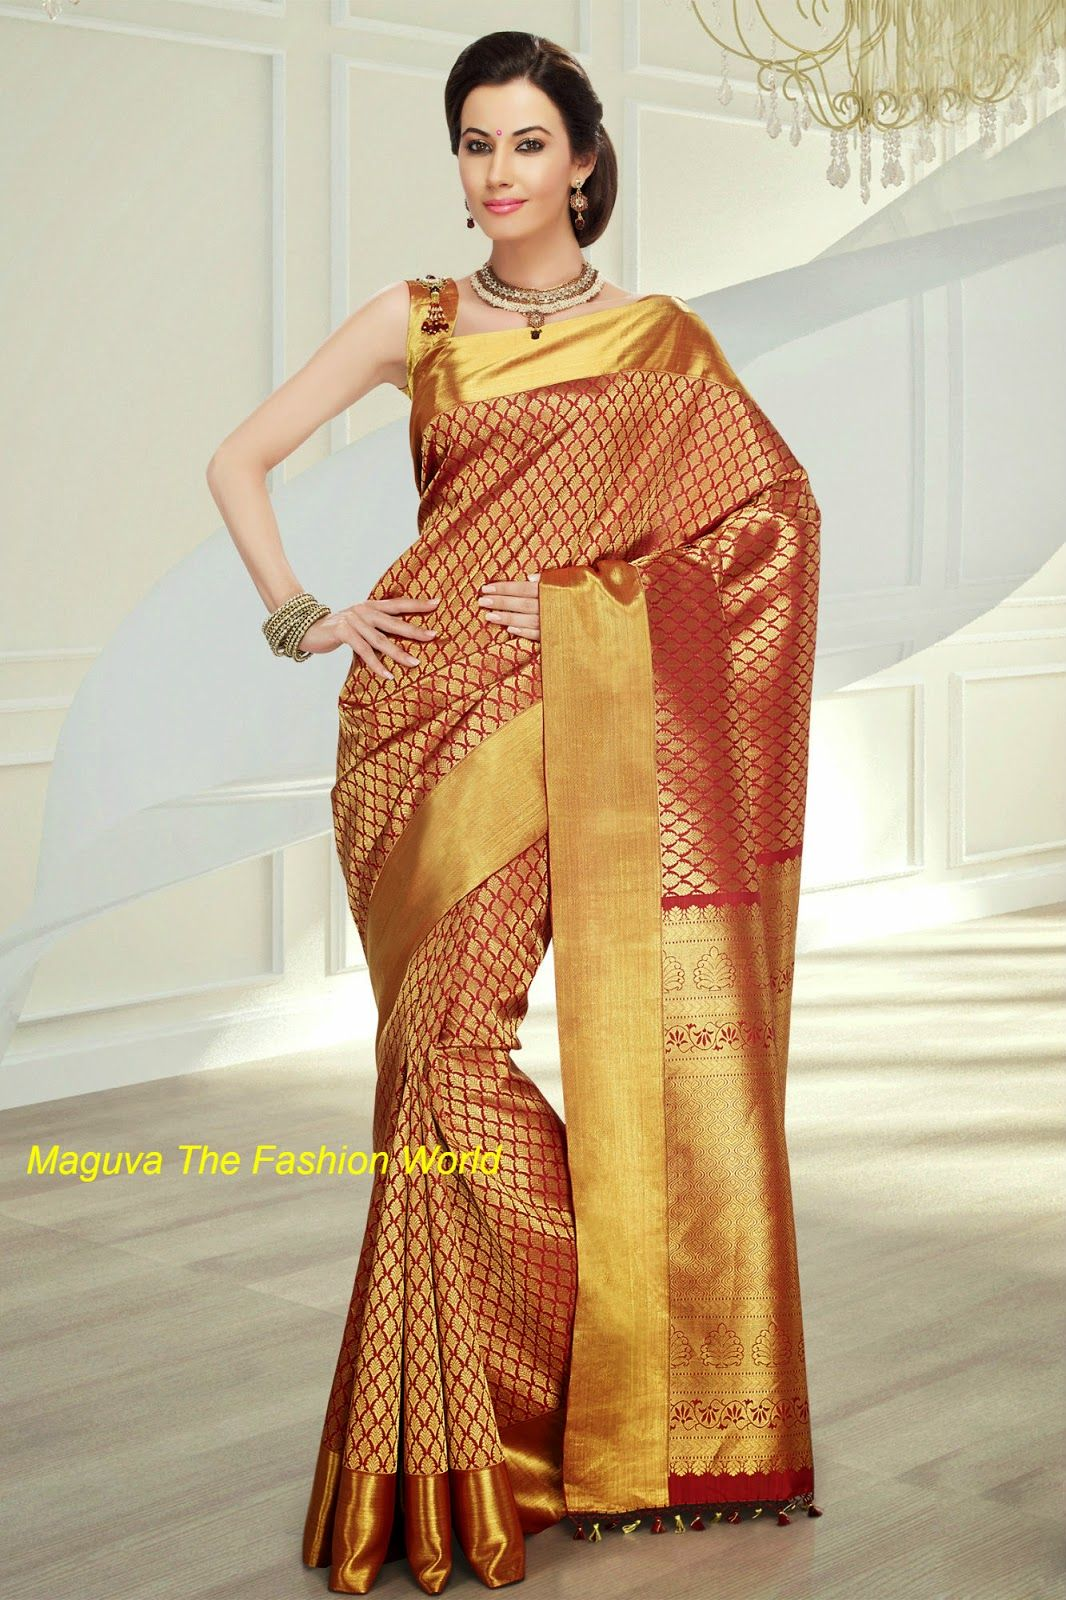 15 Traditional Wedding silk sarees from RMKV WEDDING SILKS - Maguva The Fashion World